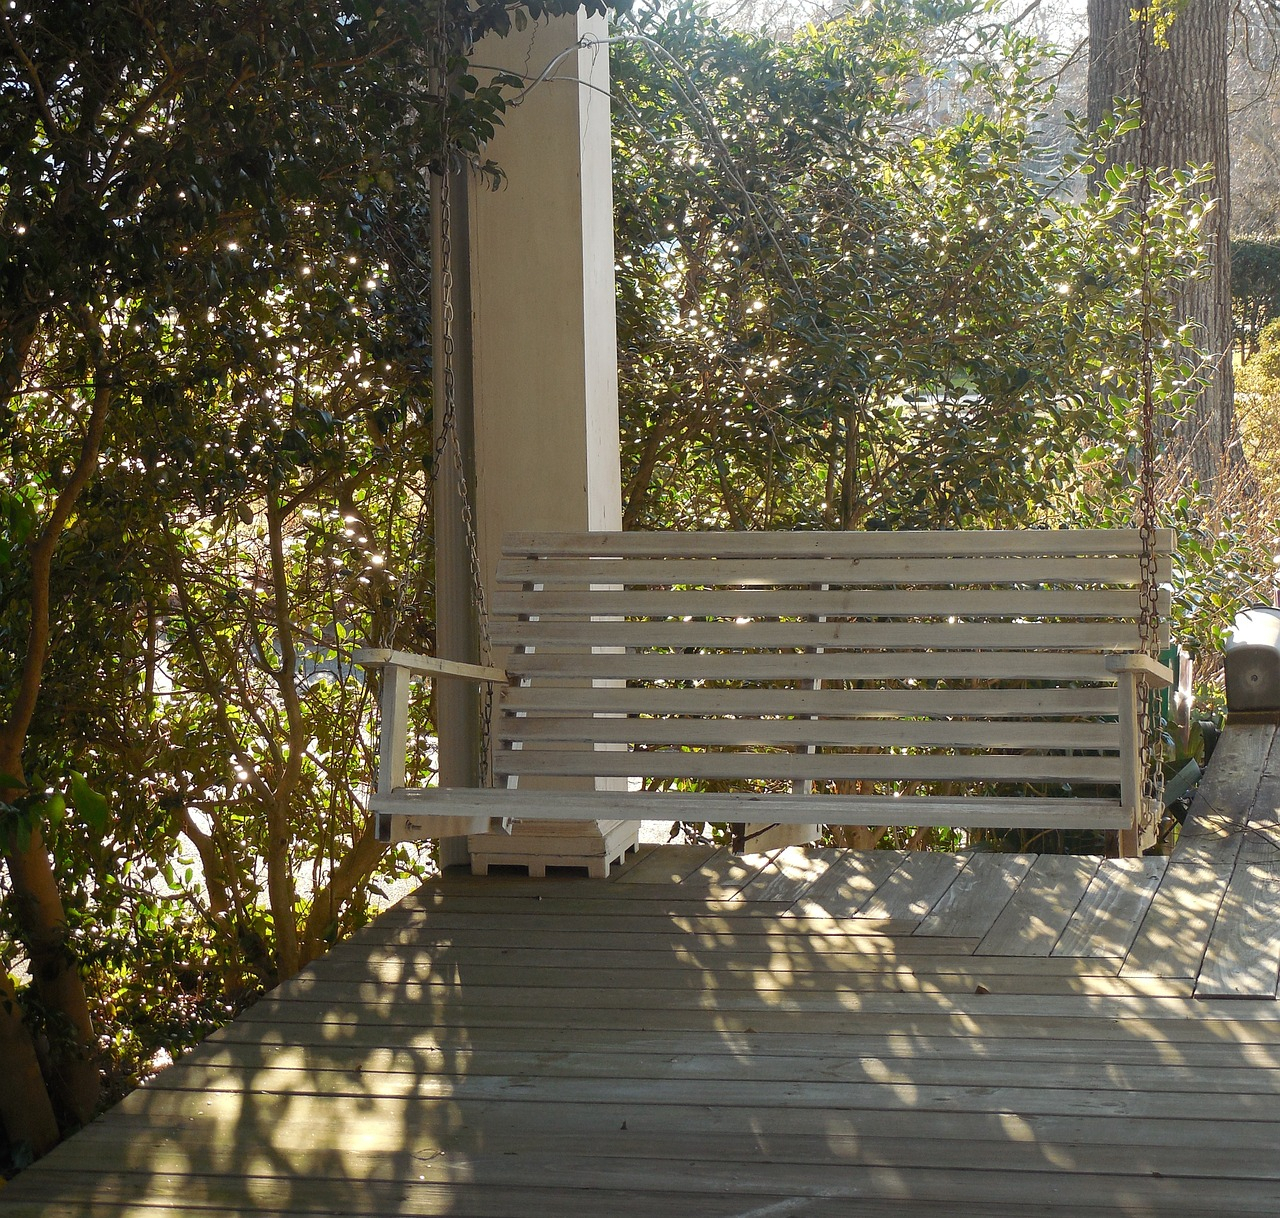 Southern,porch,swing,house,architecture – Free Image From Regarding American Flag Porch Swings (View 19 of 25)